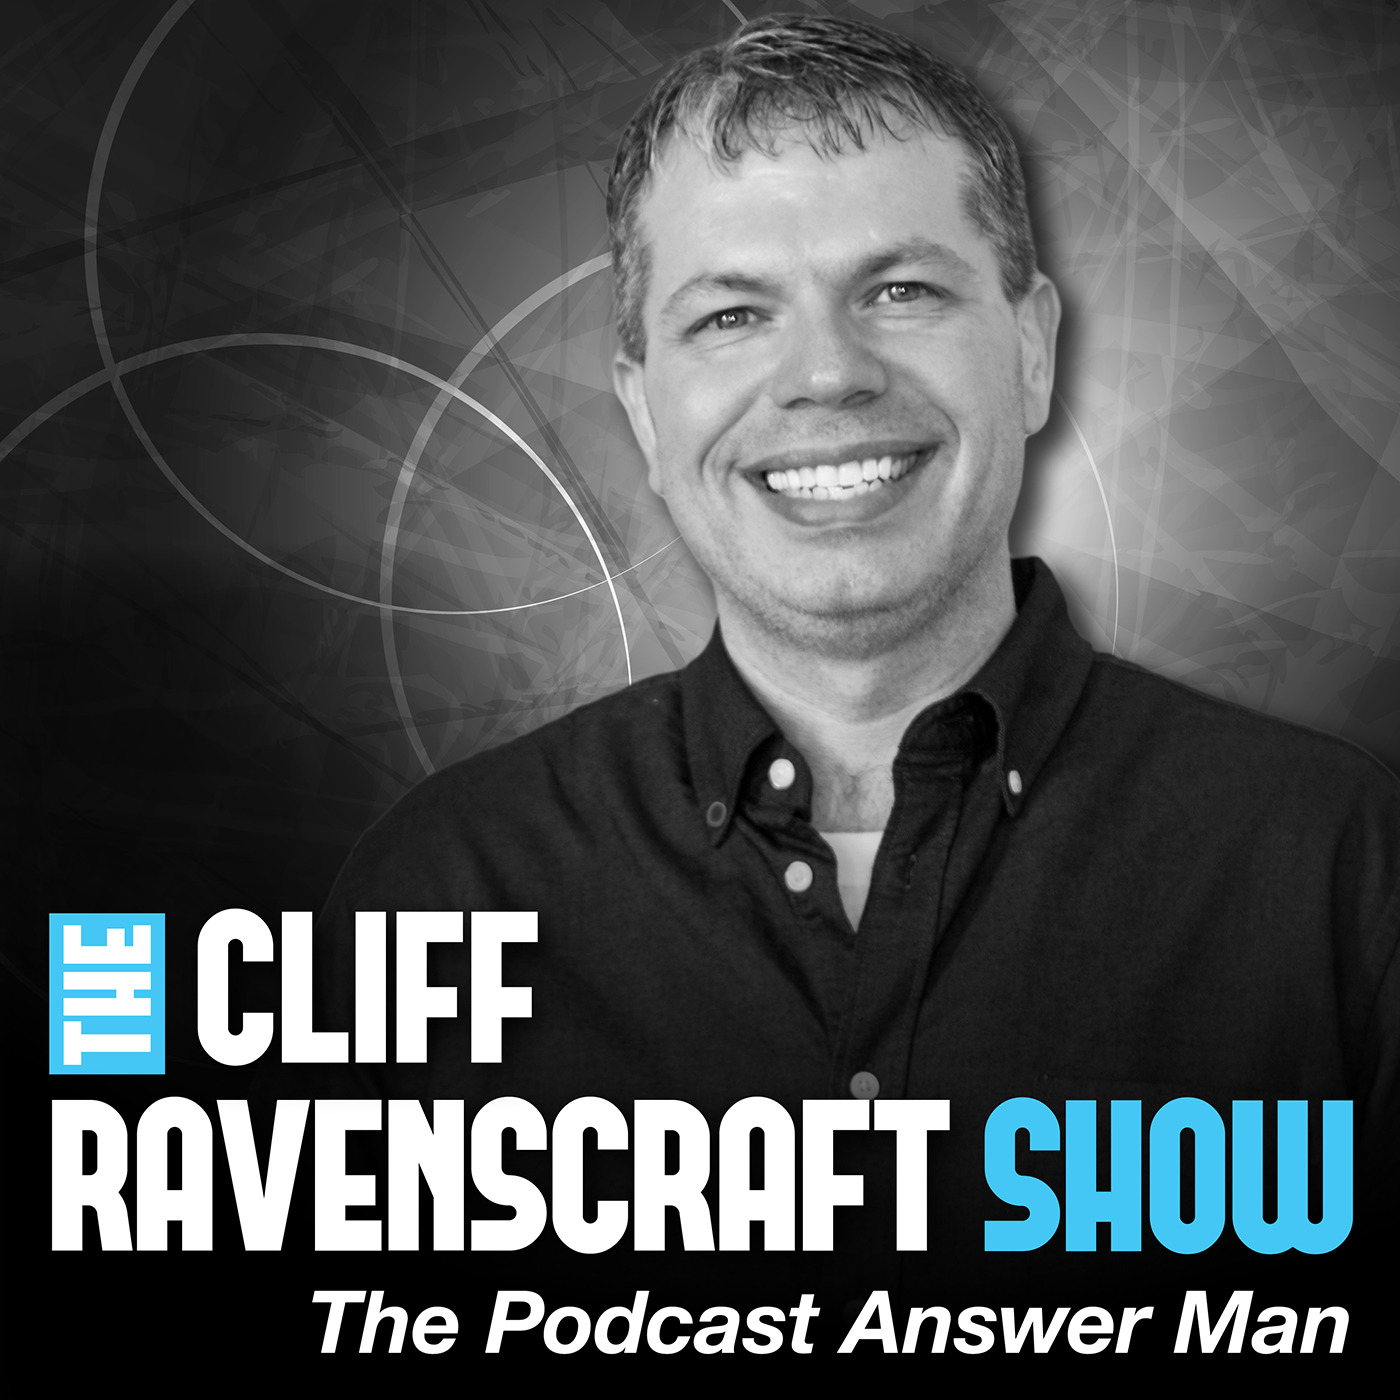 The Cliff Ravenscraft Show | Learn How To Podcast | Online Business and Social Media Marketing Tips From The Podcast Answer Man